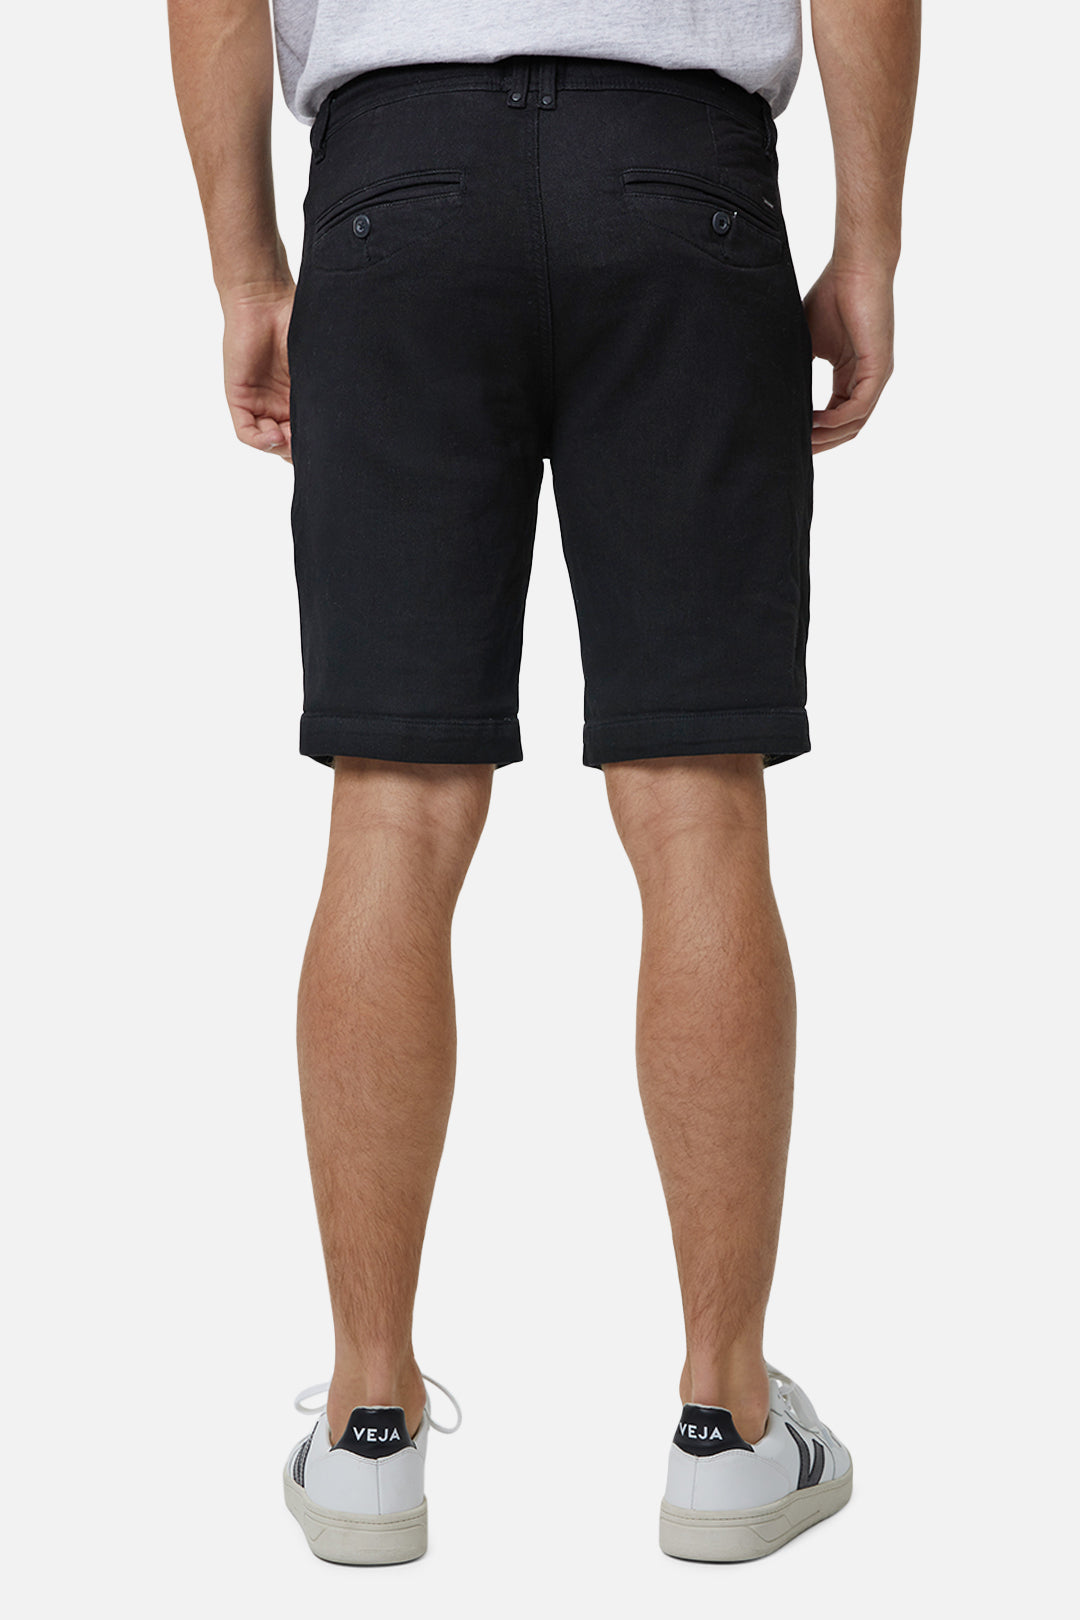 The Drifter Cuba Short - Spray Black